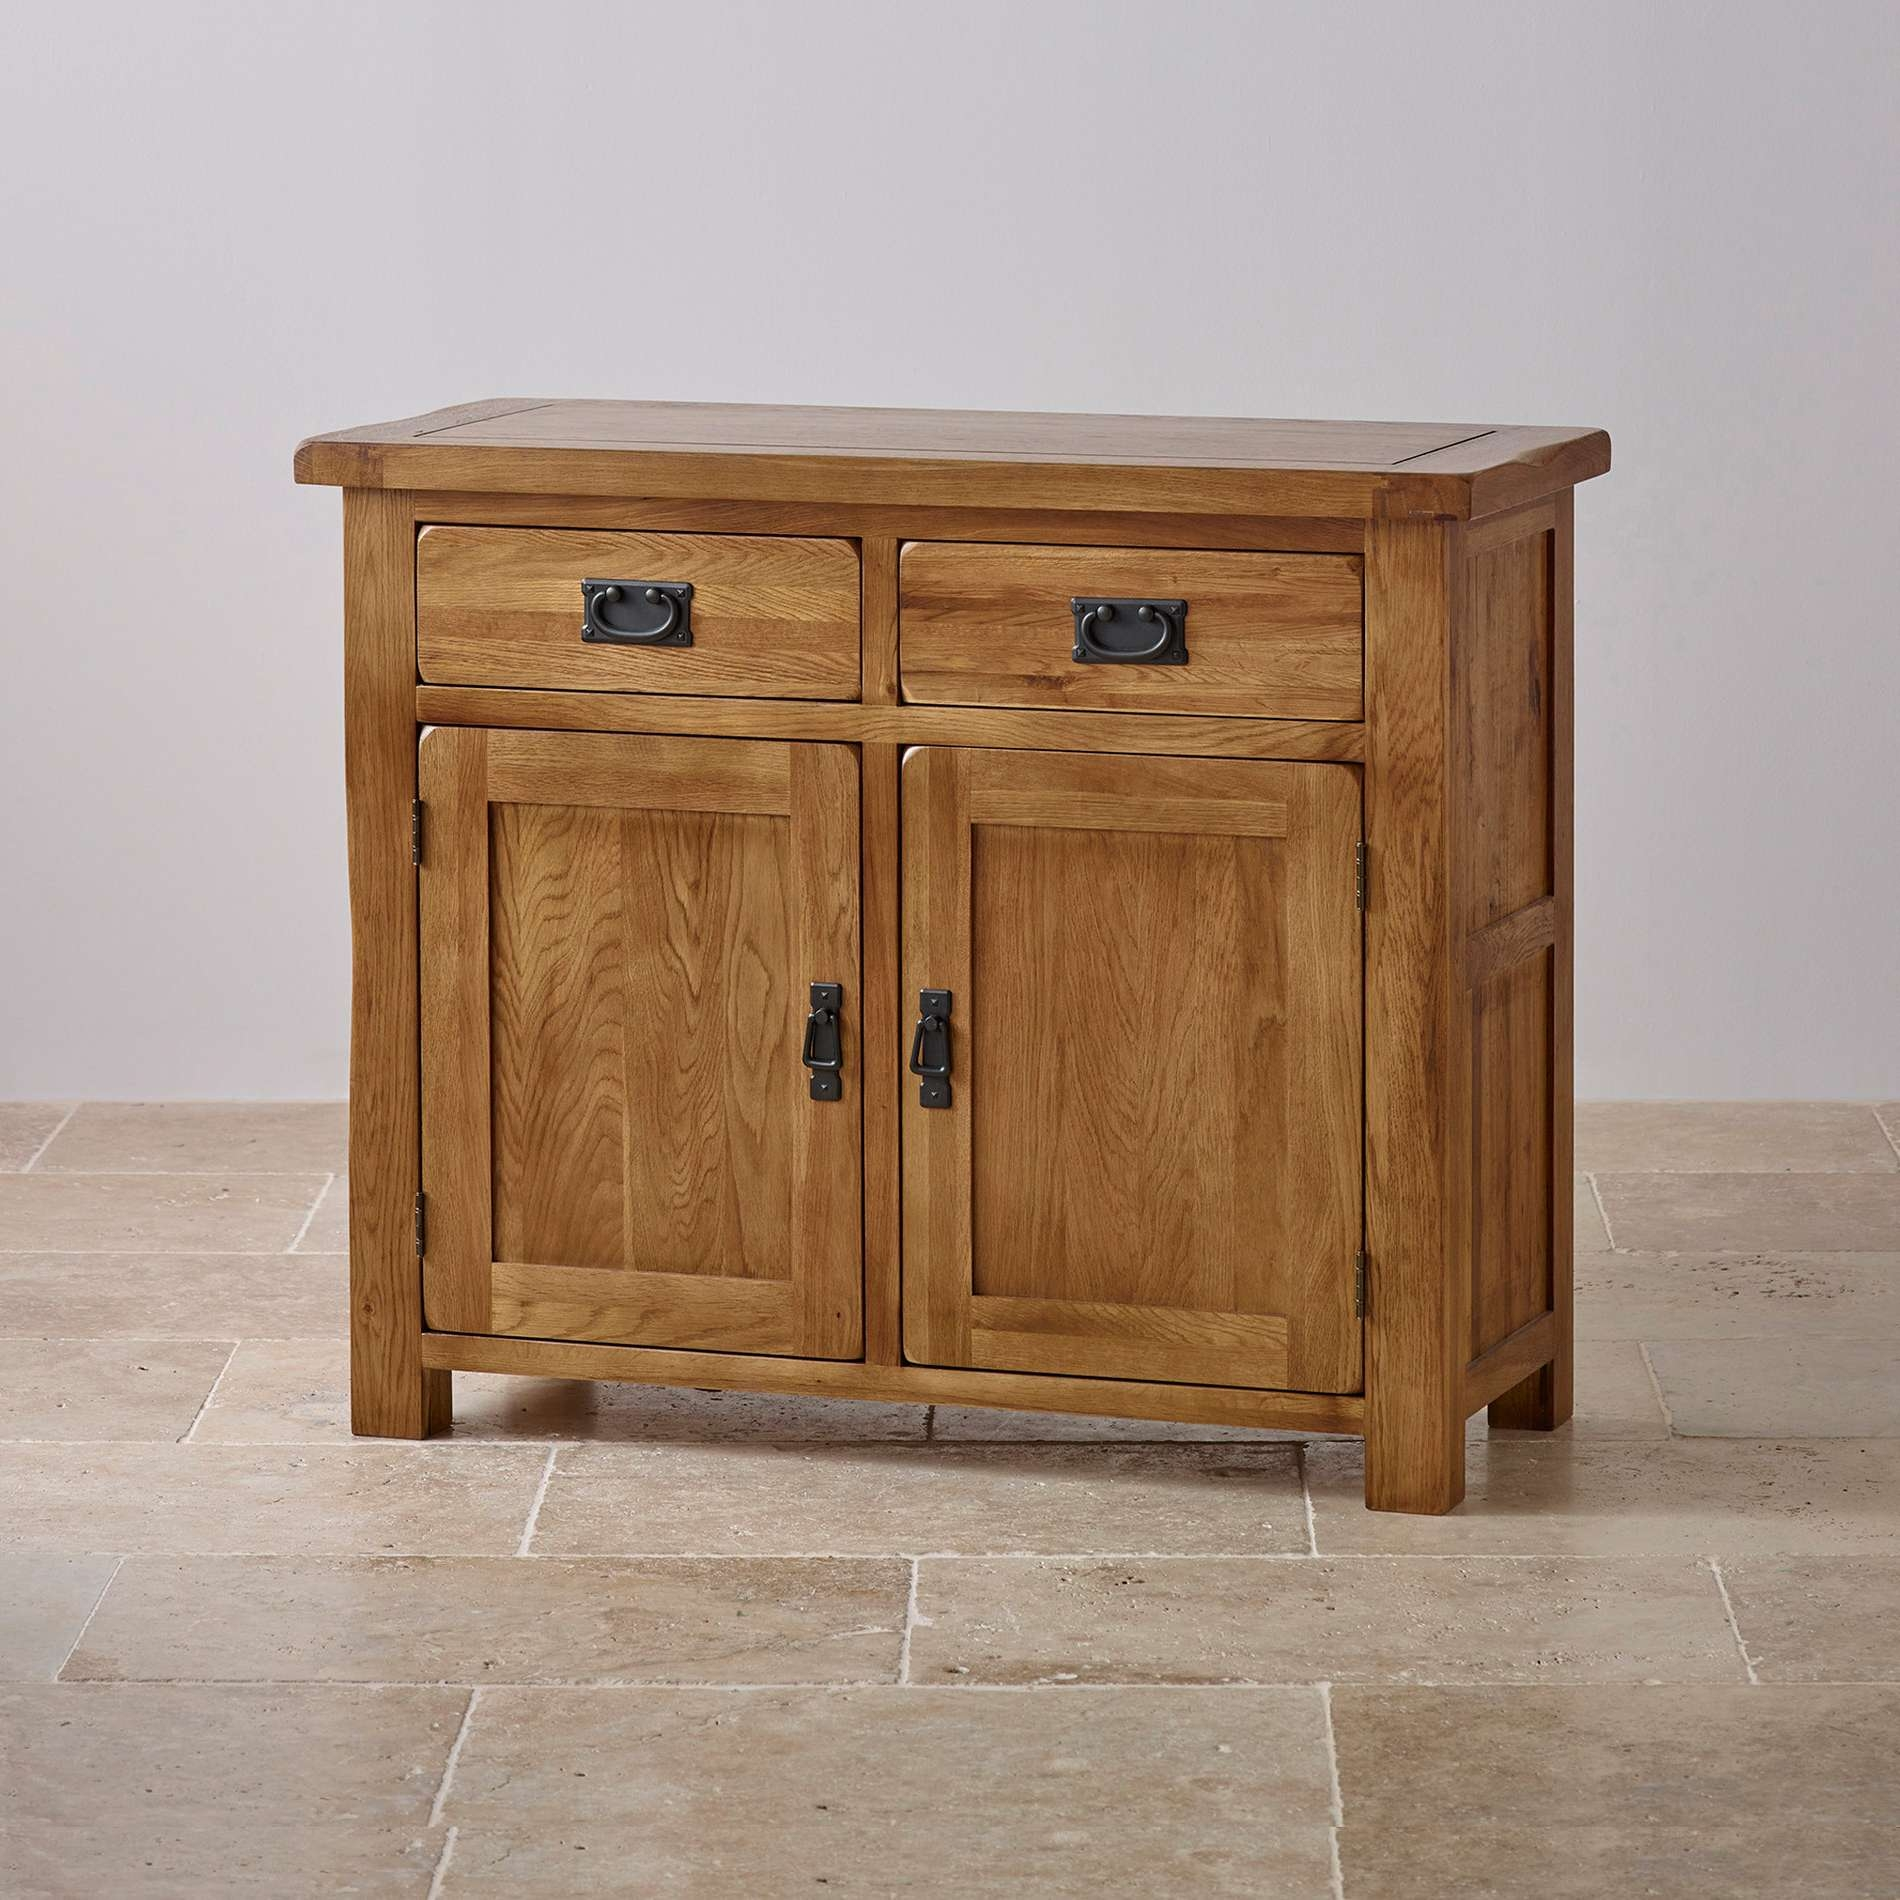 Original Rustic Solid Oak Small Sideboard | Oak Furniture Land For Rustic Sideboards Furniture (View 6 of 20)